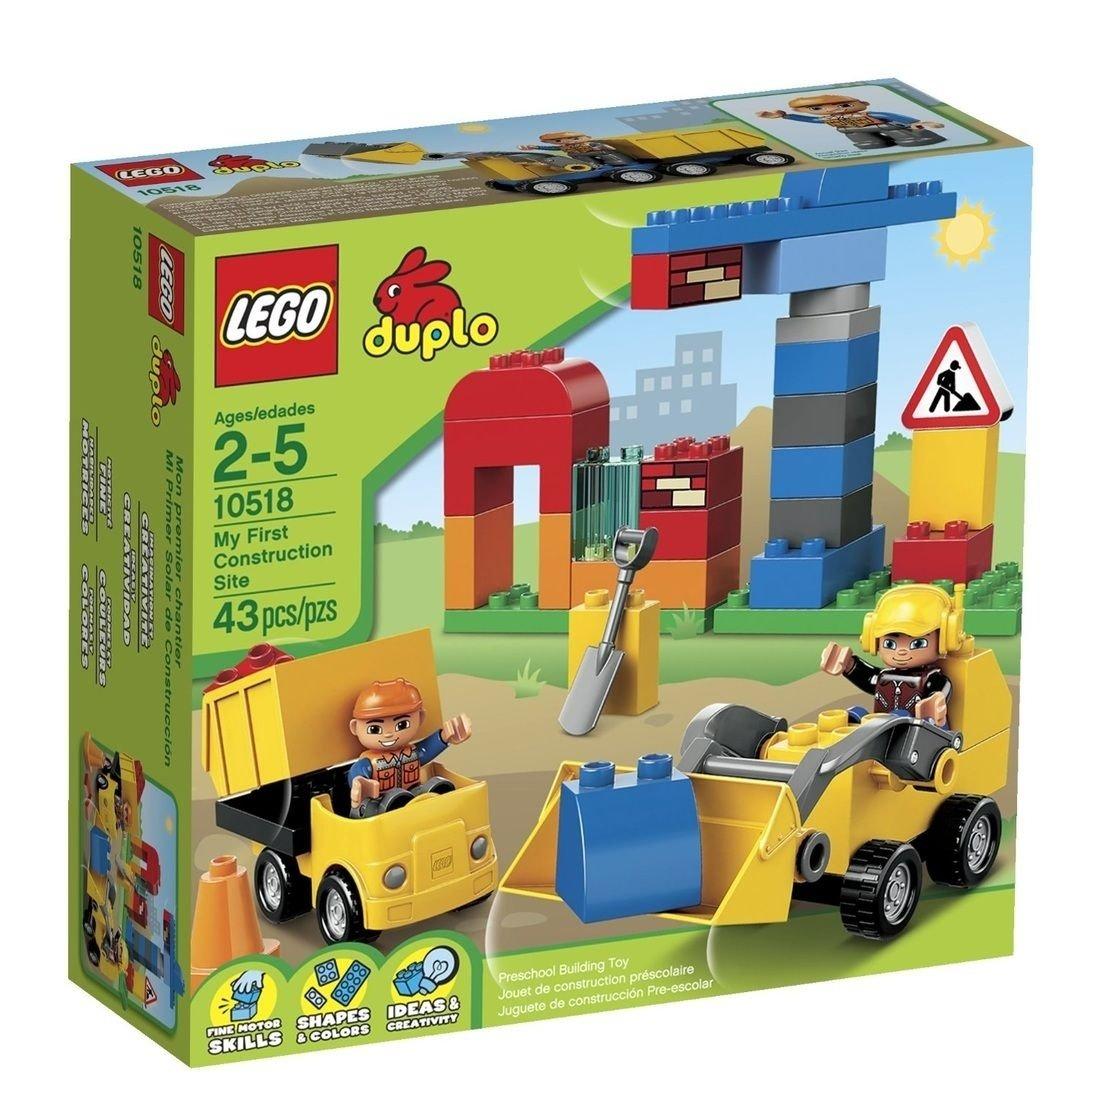 10 Amazing Gift Idea For 4 Year Old Boy top toys for 4 year old boys top toys remember these 2020